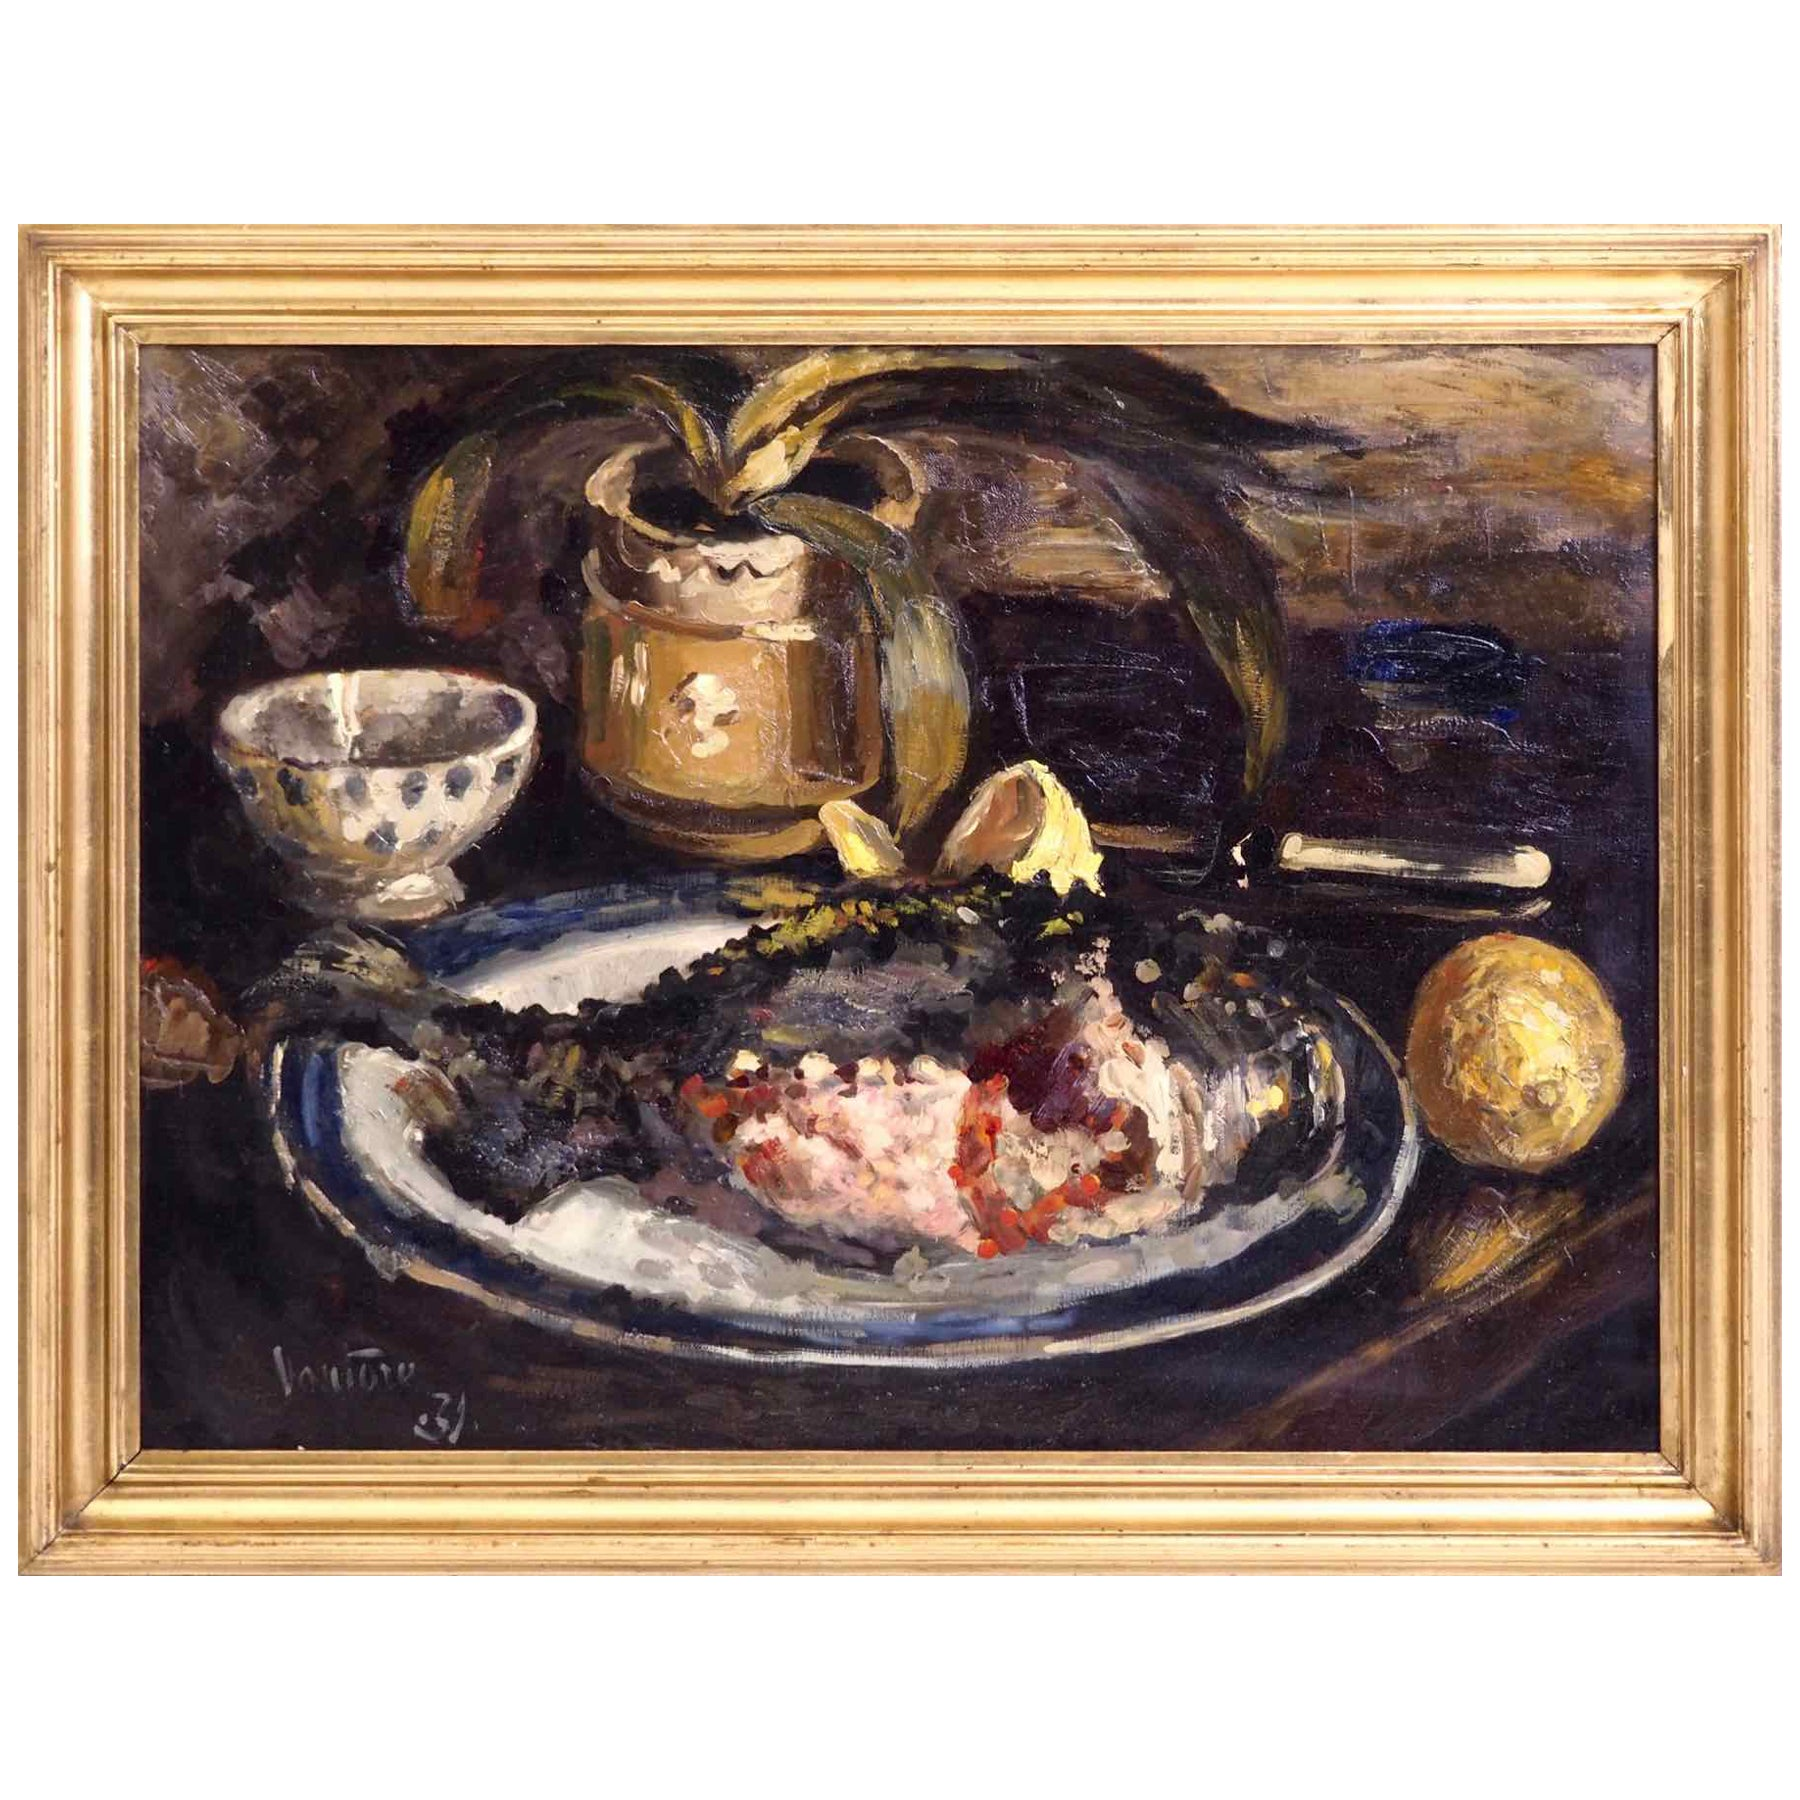 Fine Nature Morte Painting, Signed and Dated '31, Oil on Canvas